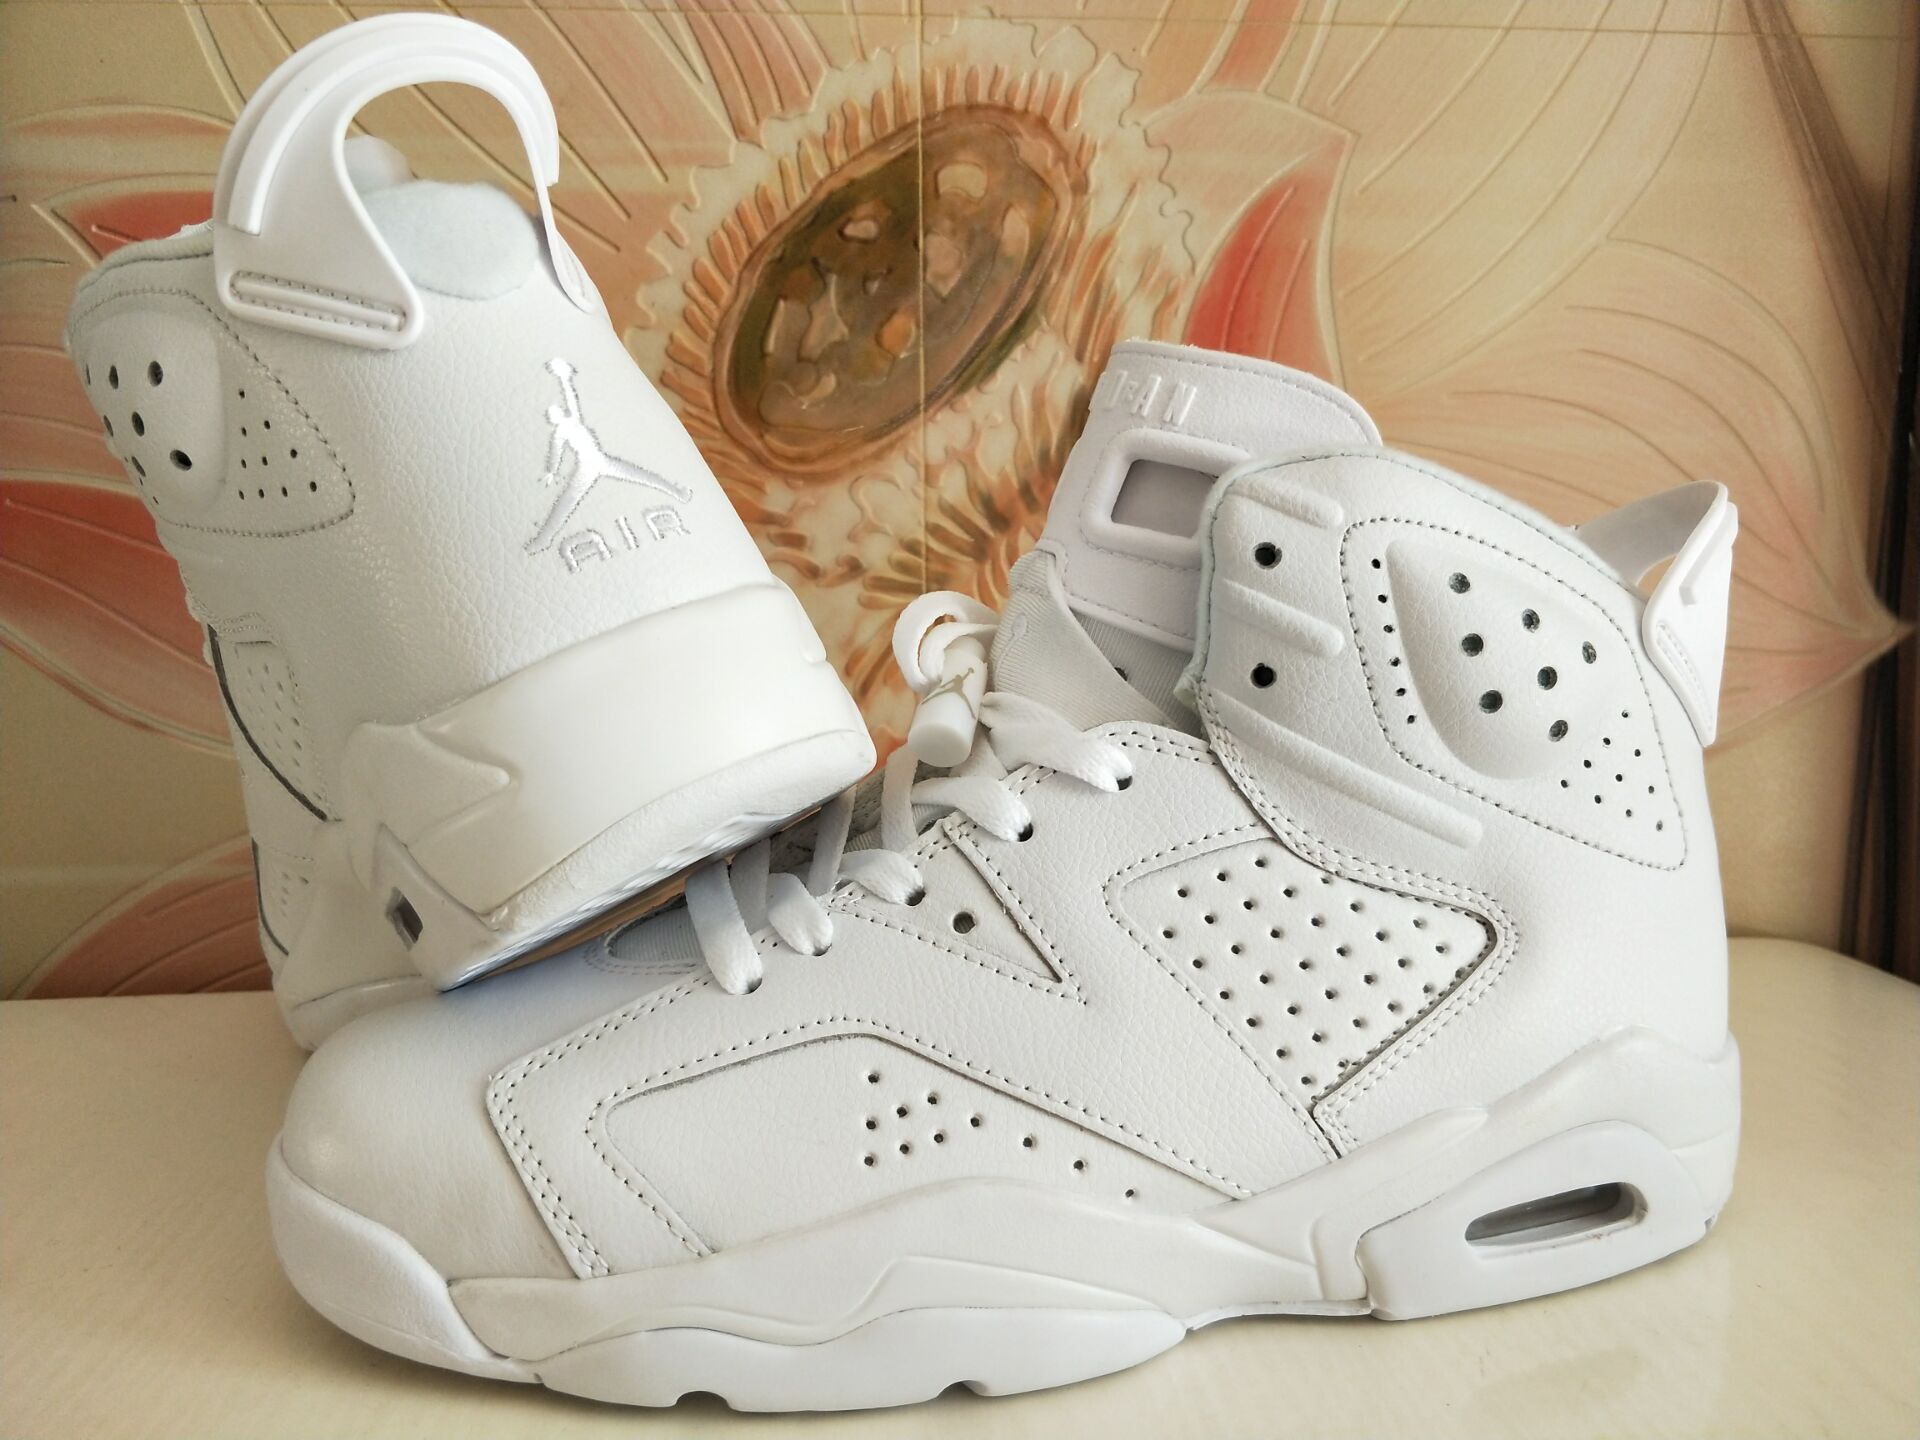 New Air Jordan 6 Retro All White Shoes